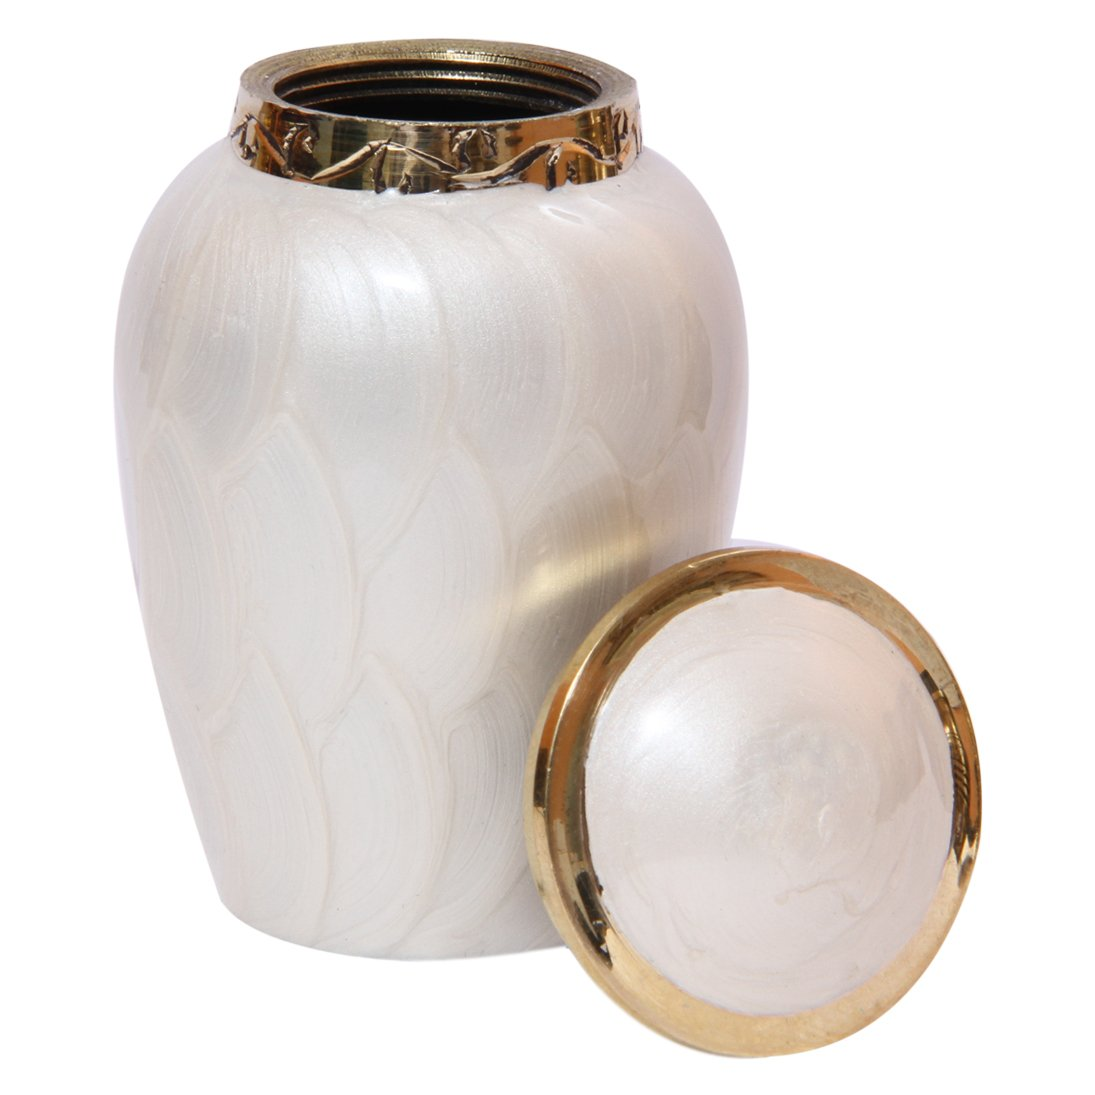 Blessing Pearl Memorial Keepsake Urn for Human Ashes, Beautiful Cremation Urn